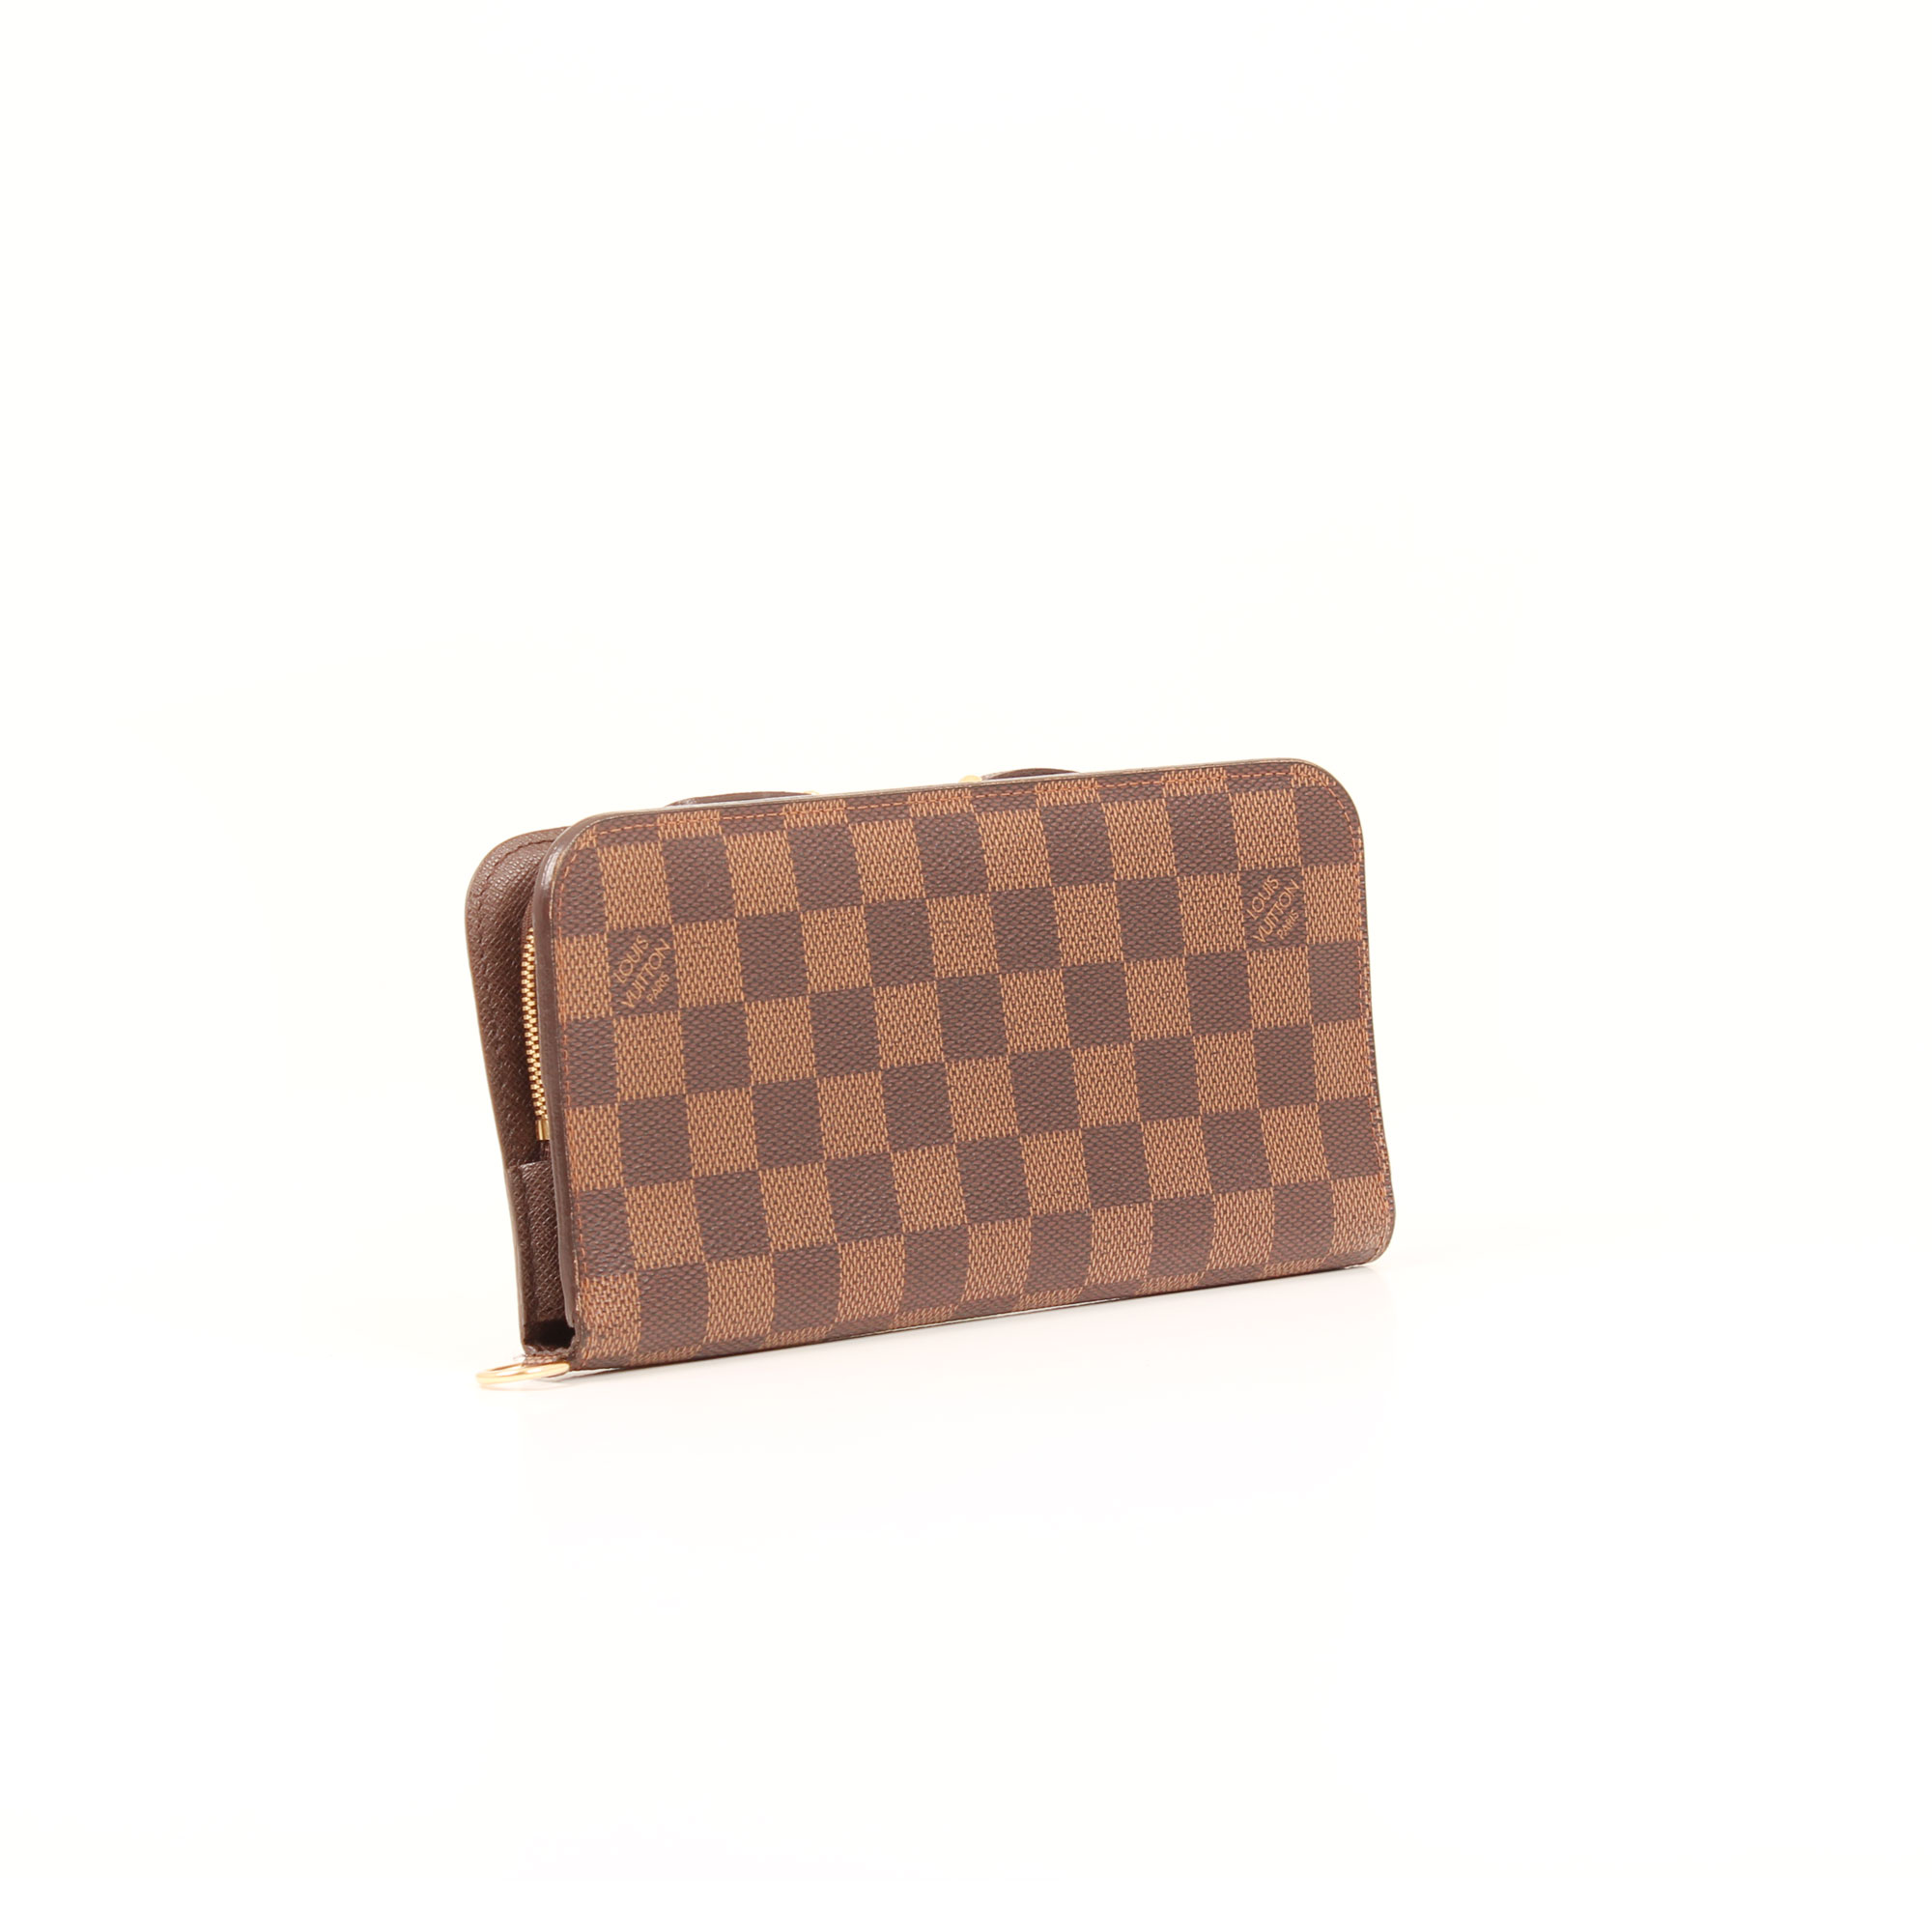 wallet-louis-vuitton-insolite-damier-ebene-general